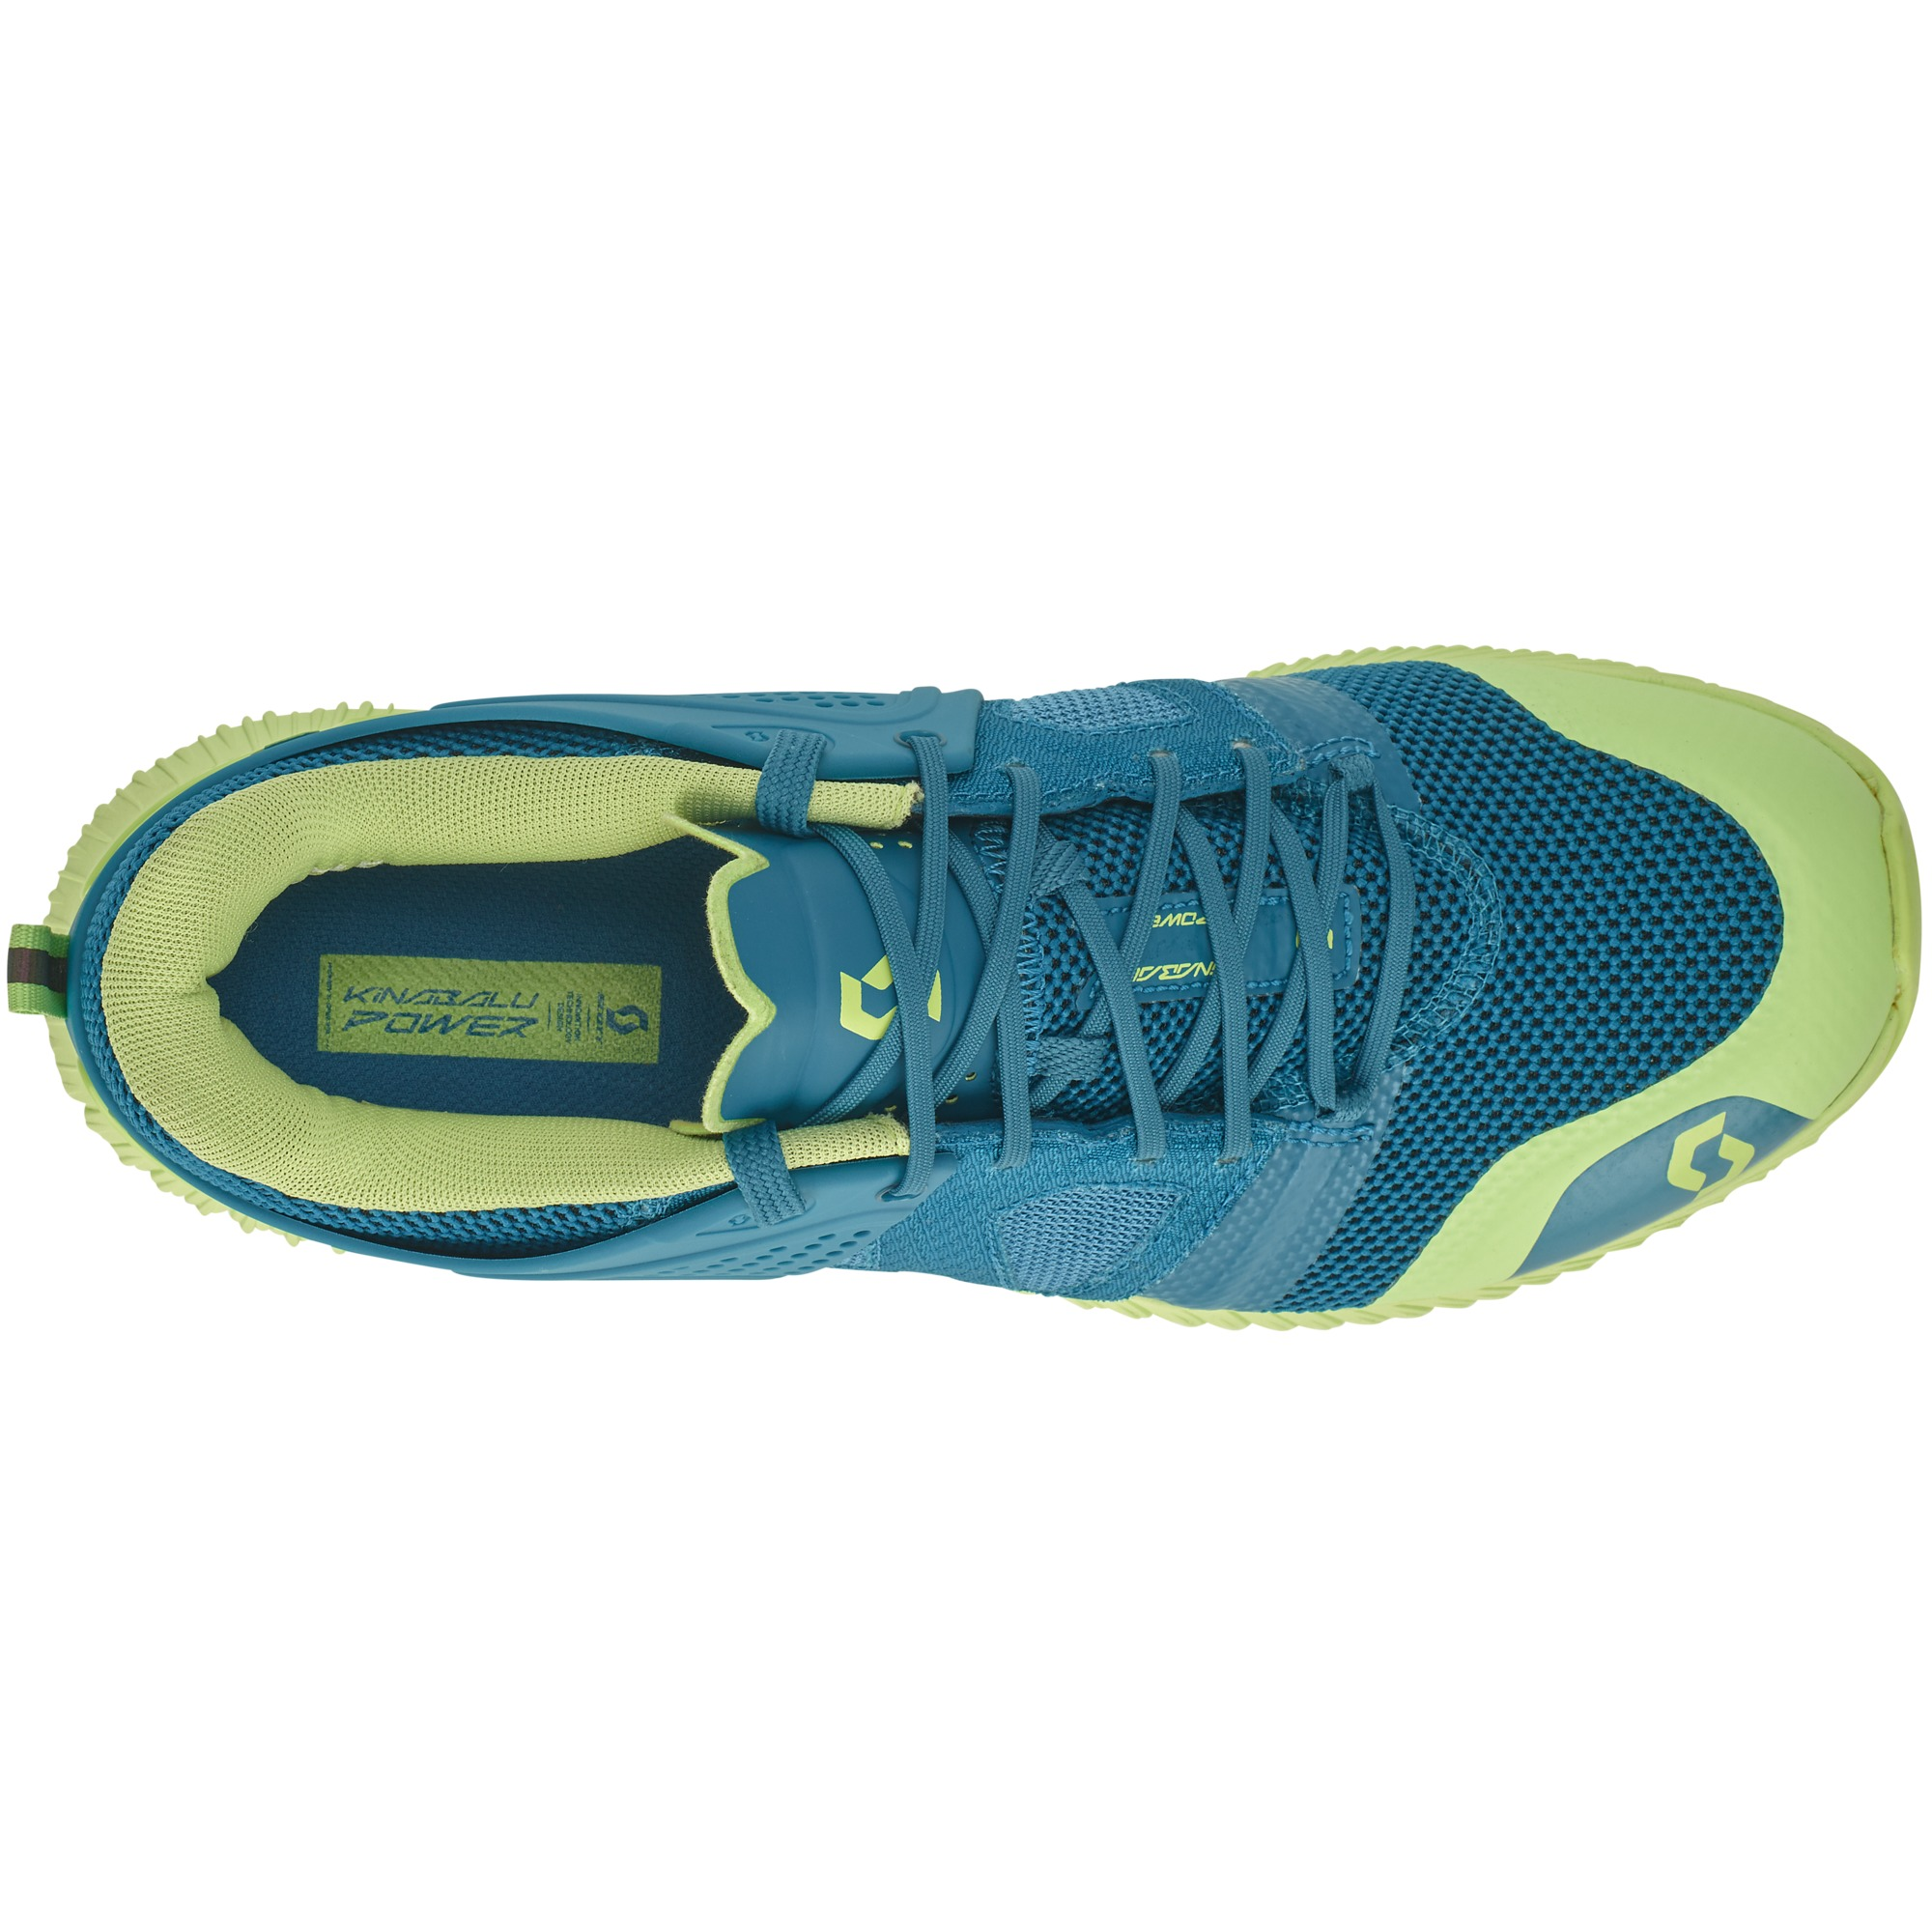 SCOTT Kinabalu Power Women's Shoe